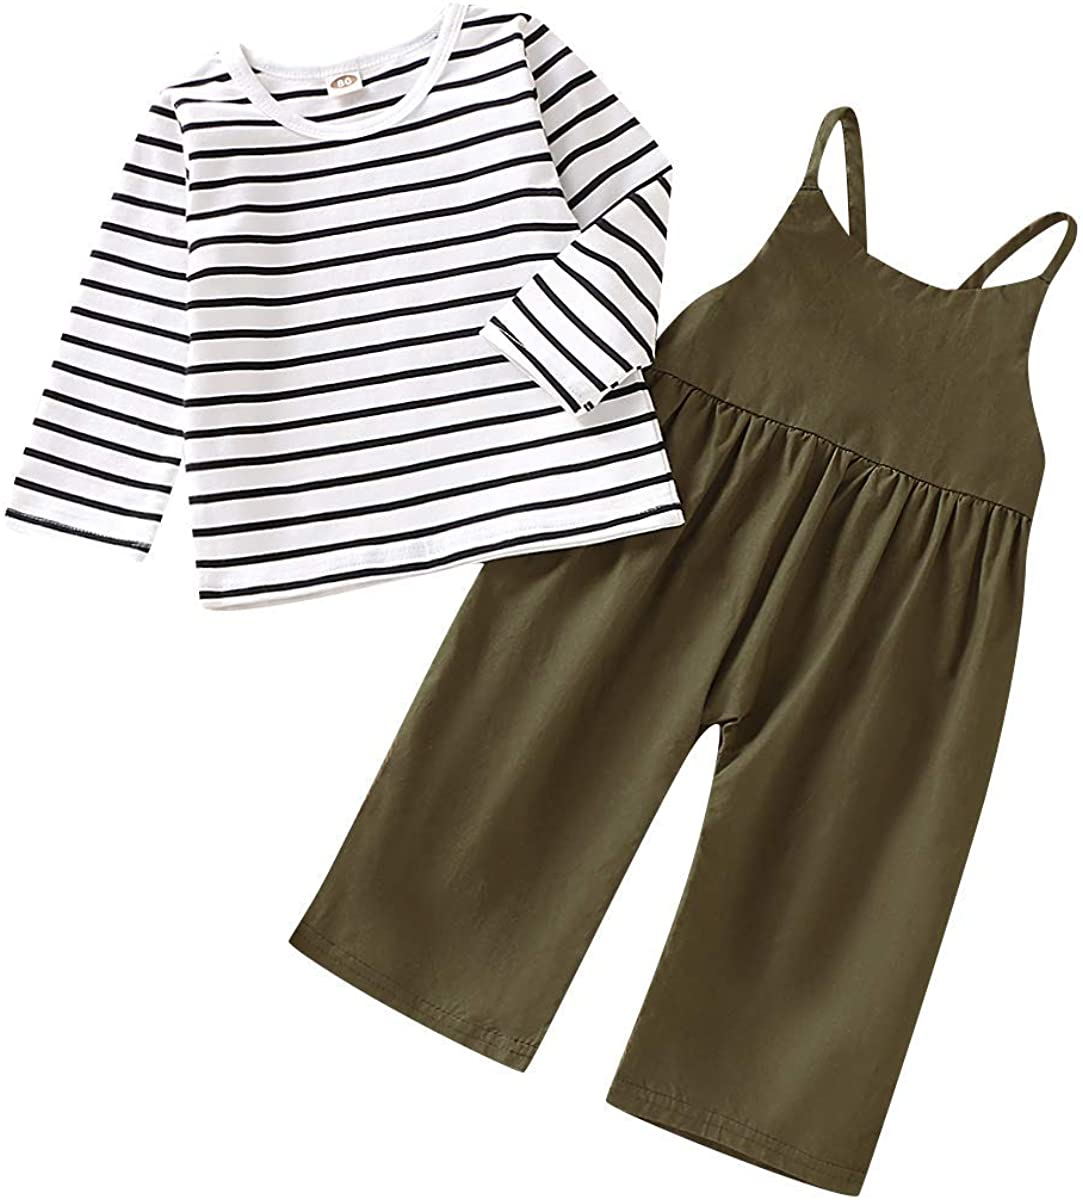 Toddler Baby Girl Summer Clothes Long Sleeve Stripe Top + Strap Overalls Loose Jumpsuit Outfits Set